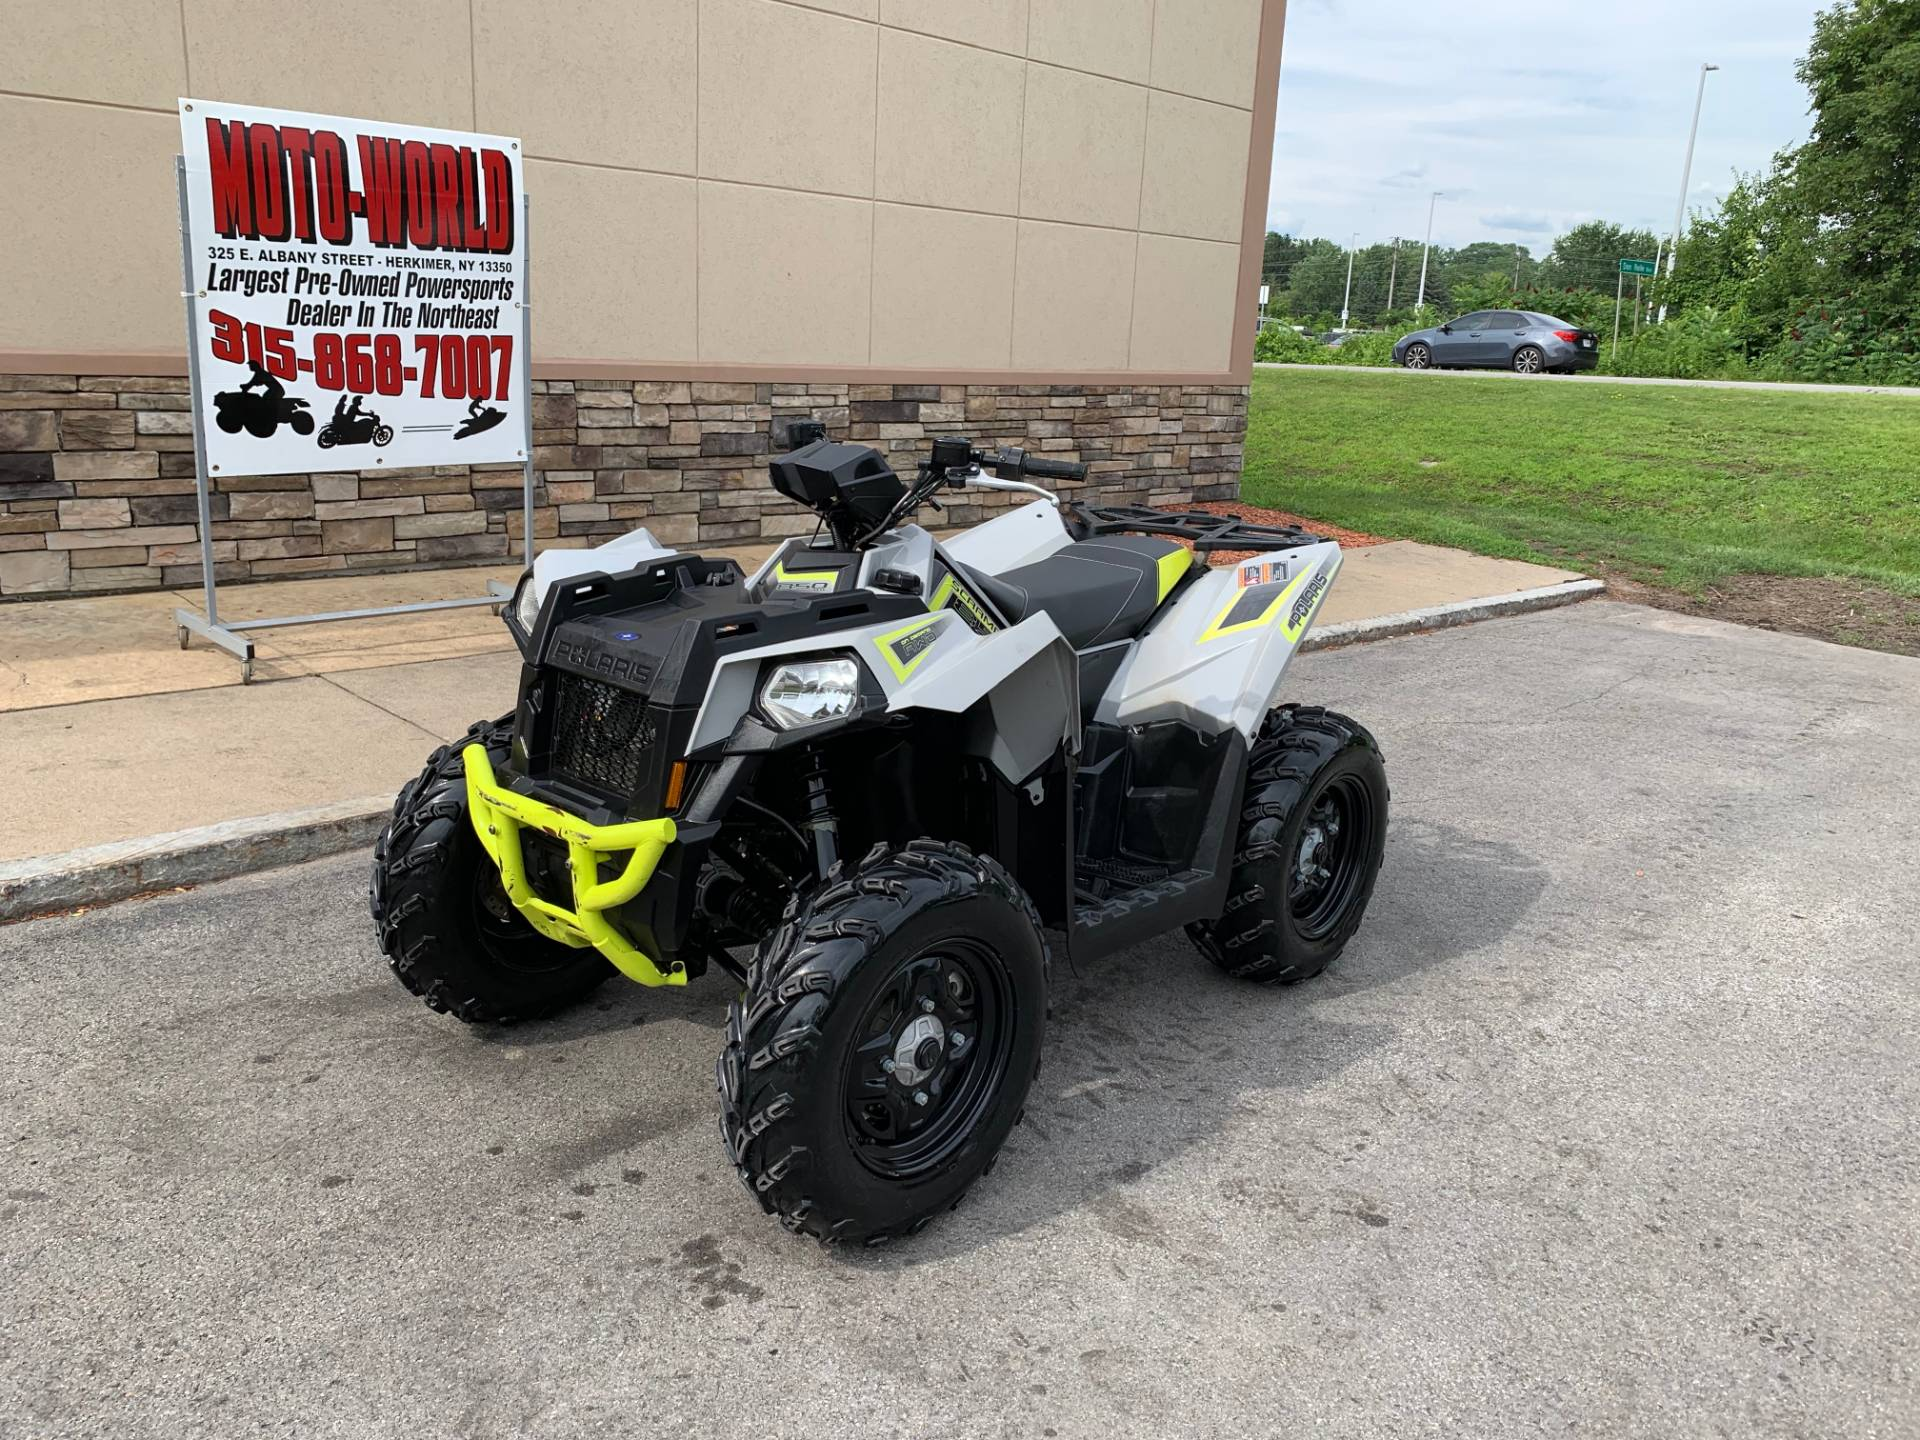 2019 Polaris Scrambler 850 in Herkimer, New York - Photo 4